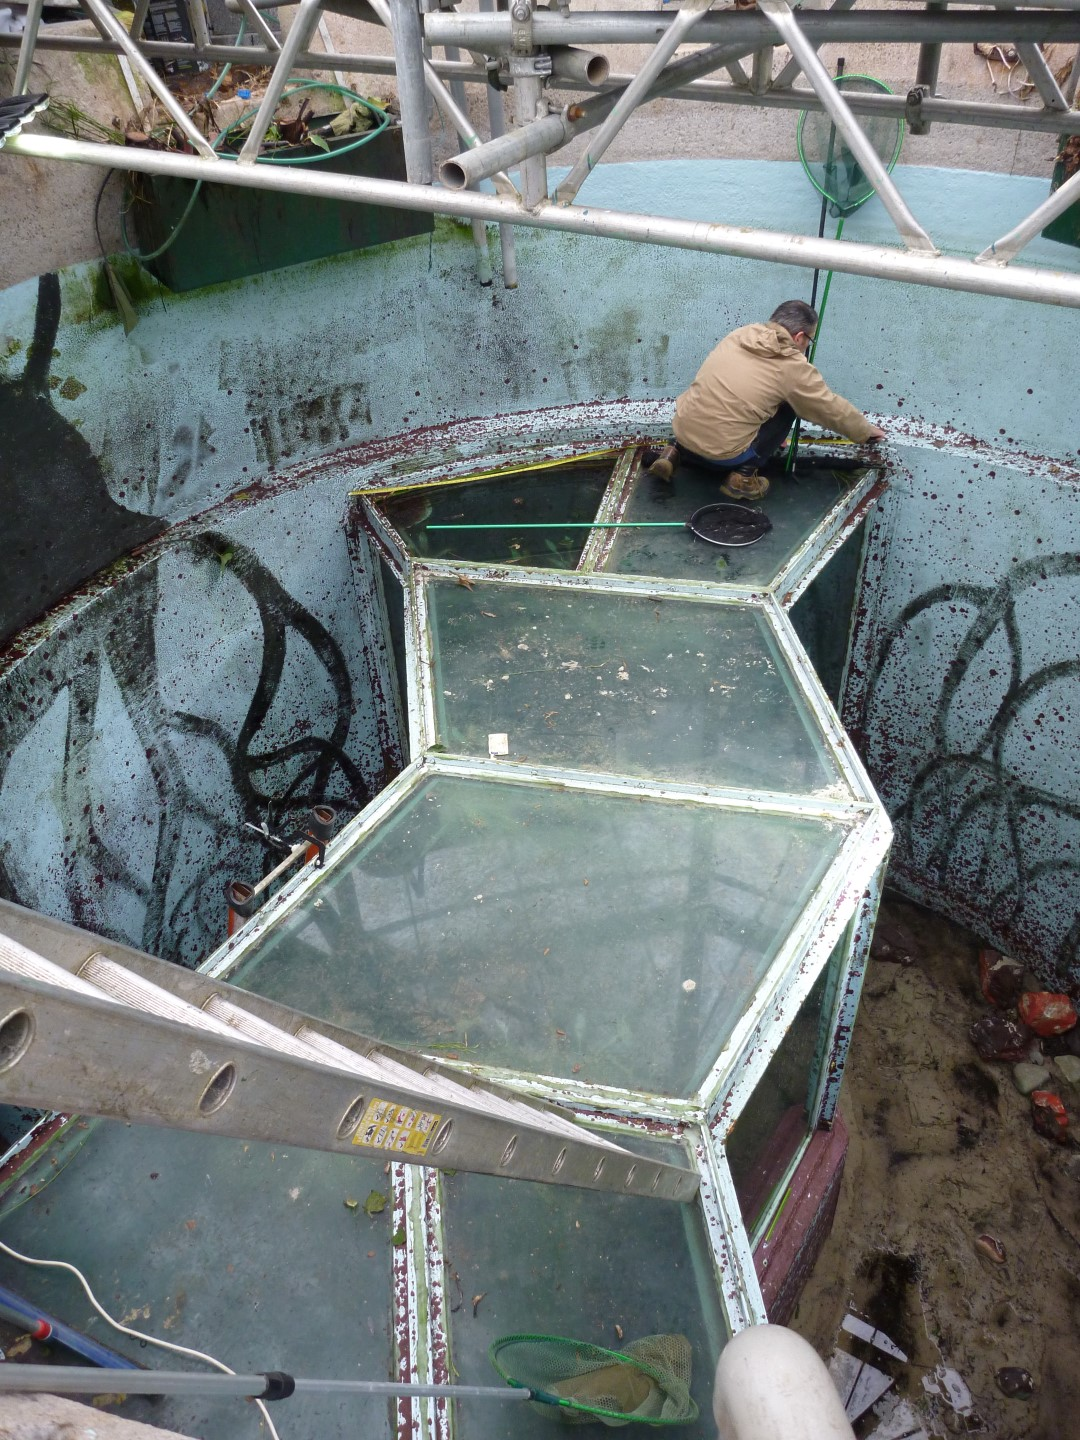 Aquarium Technology Limited to install replacement walk through acrylic tunnel